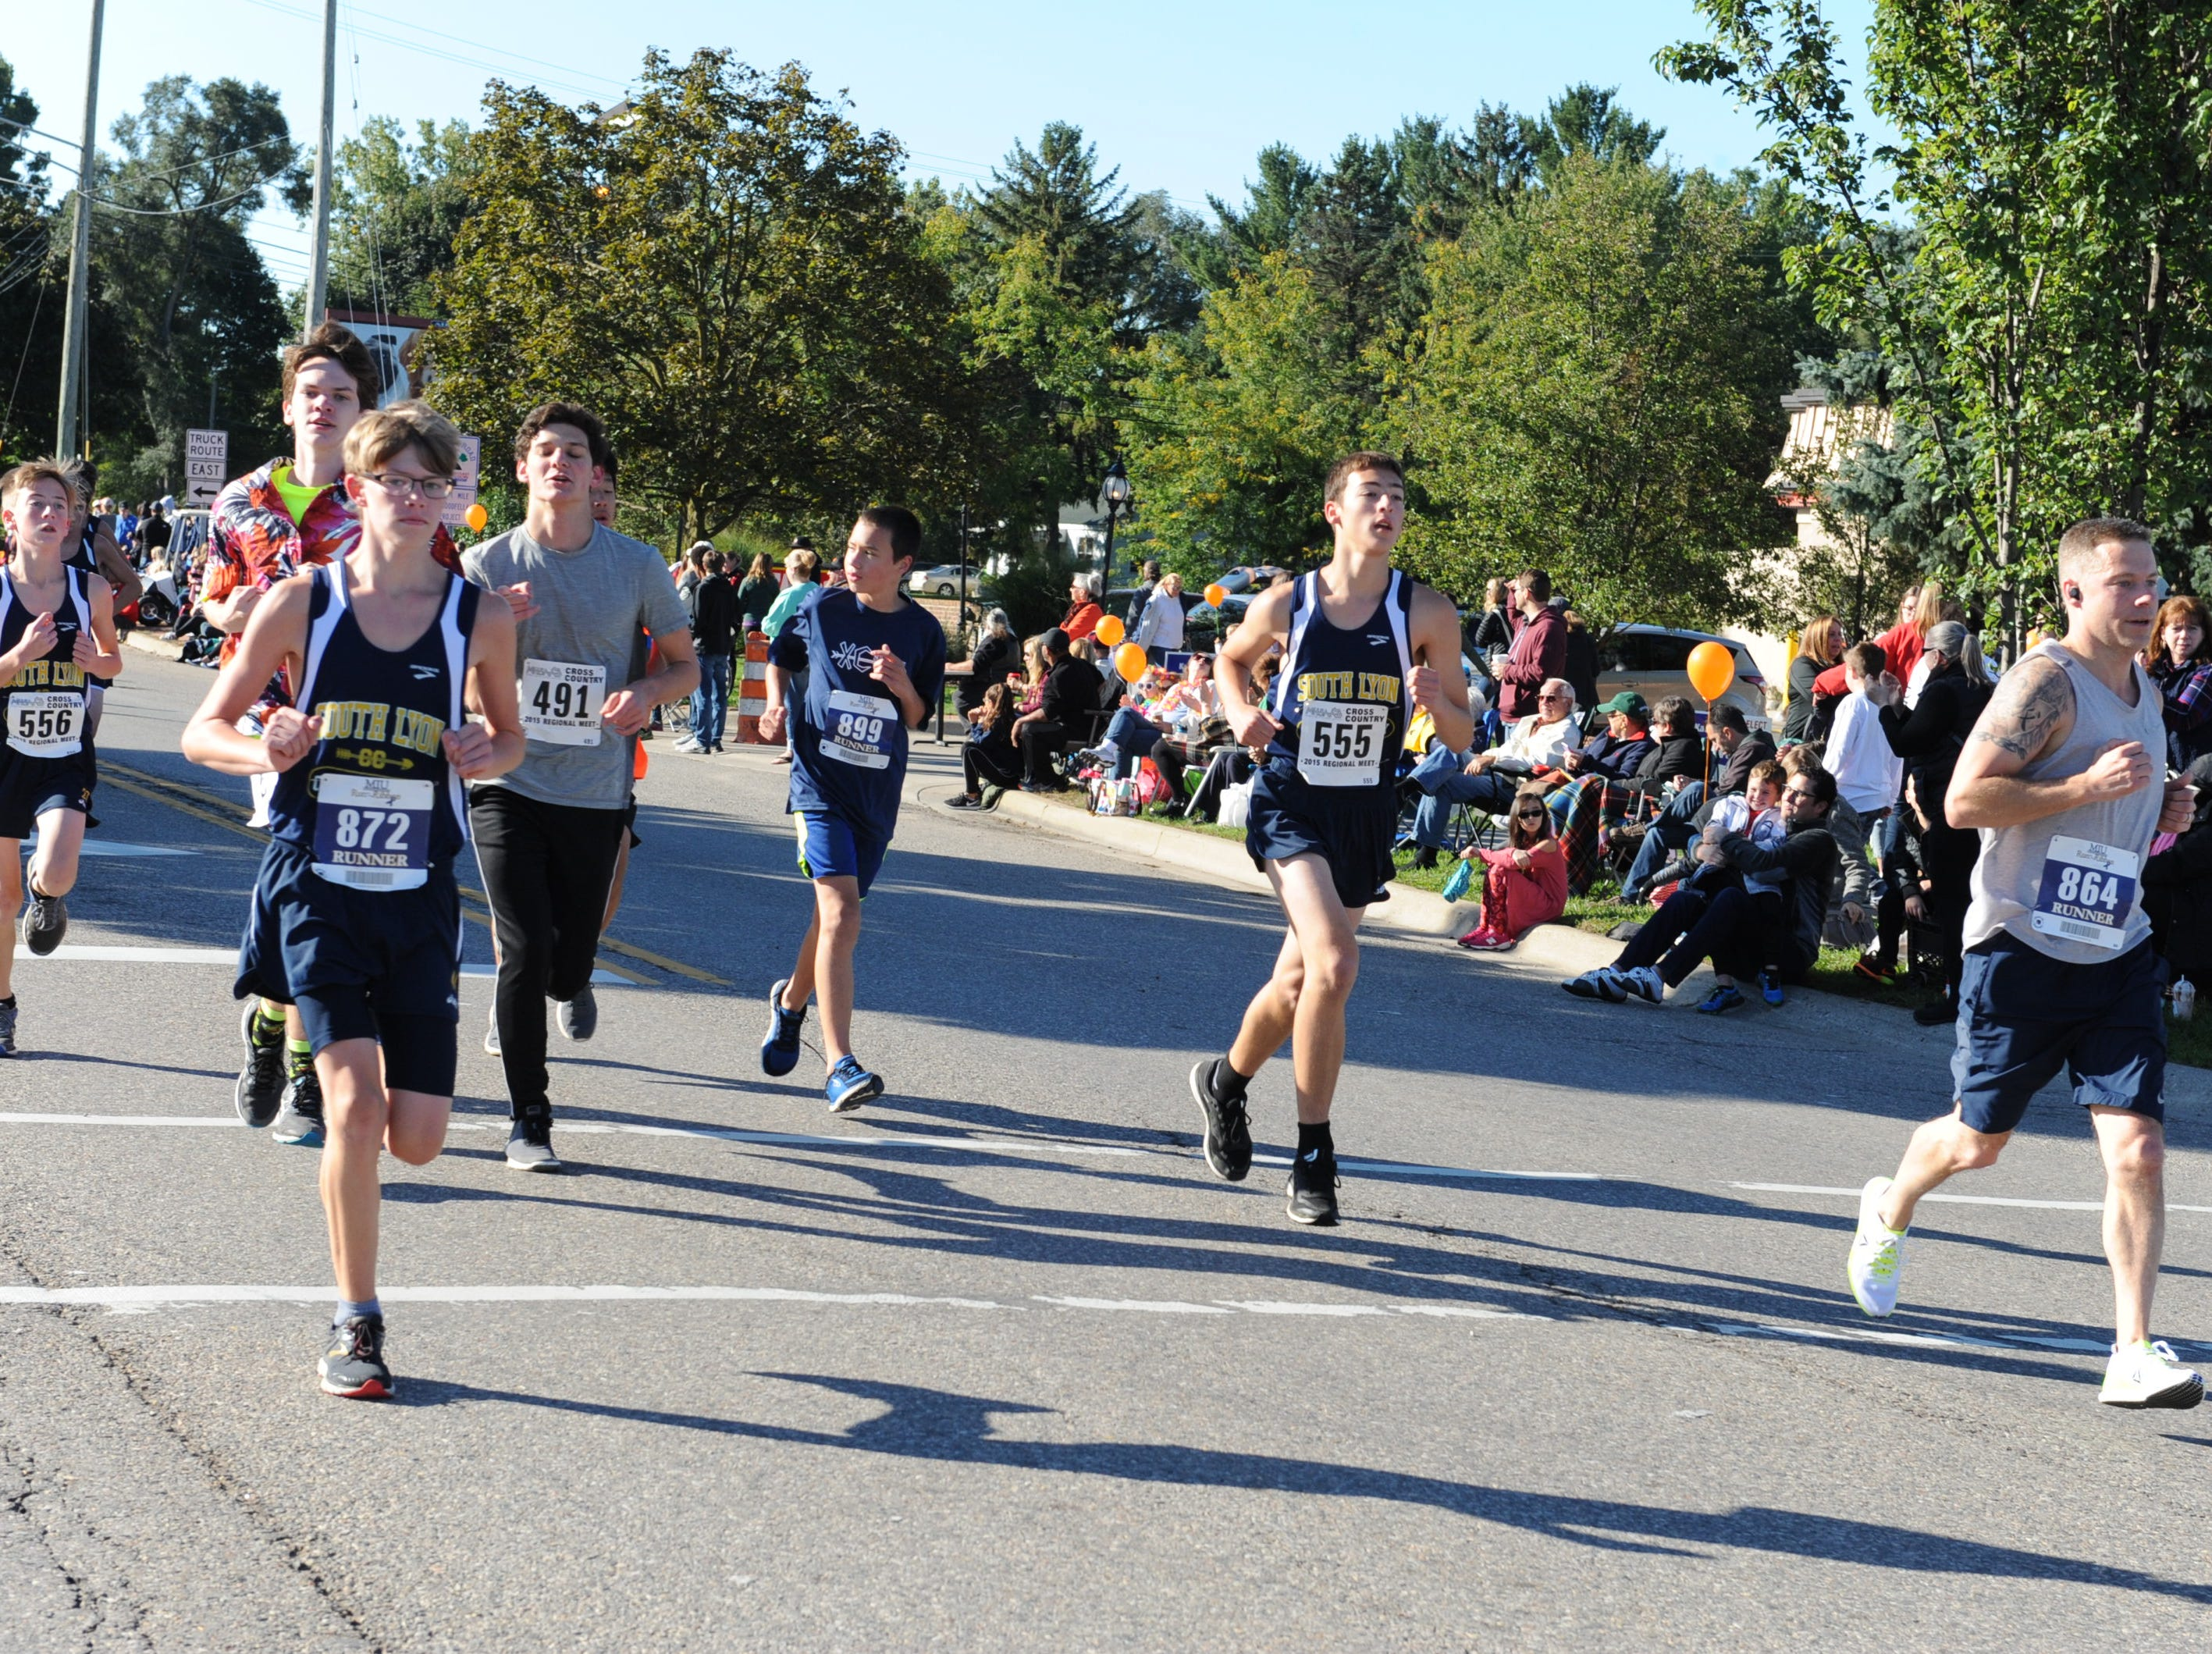 Perfect weather greeted the runners at the 5K run Saturday morning.